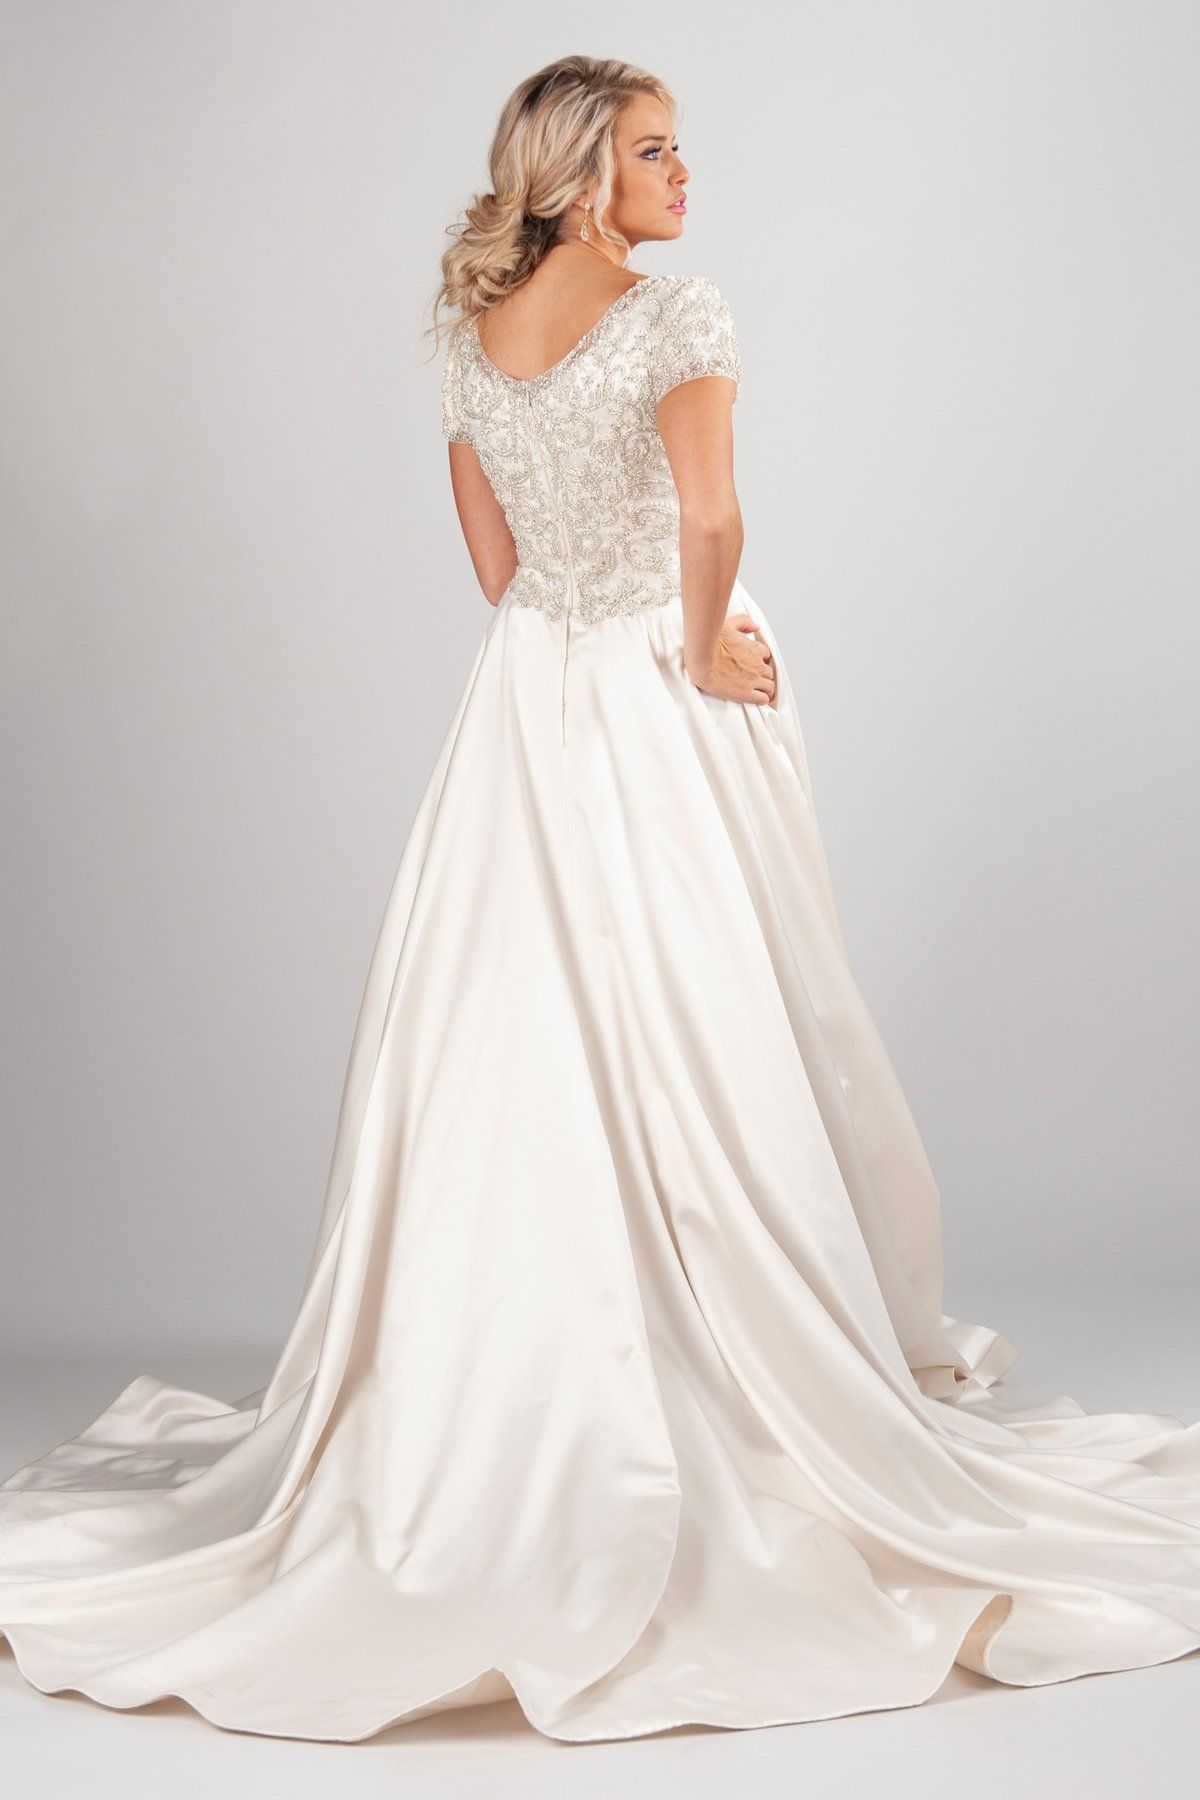 scoop neckline and fully beaded bodice offer the perfect